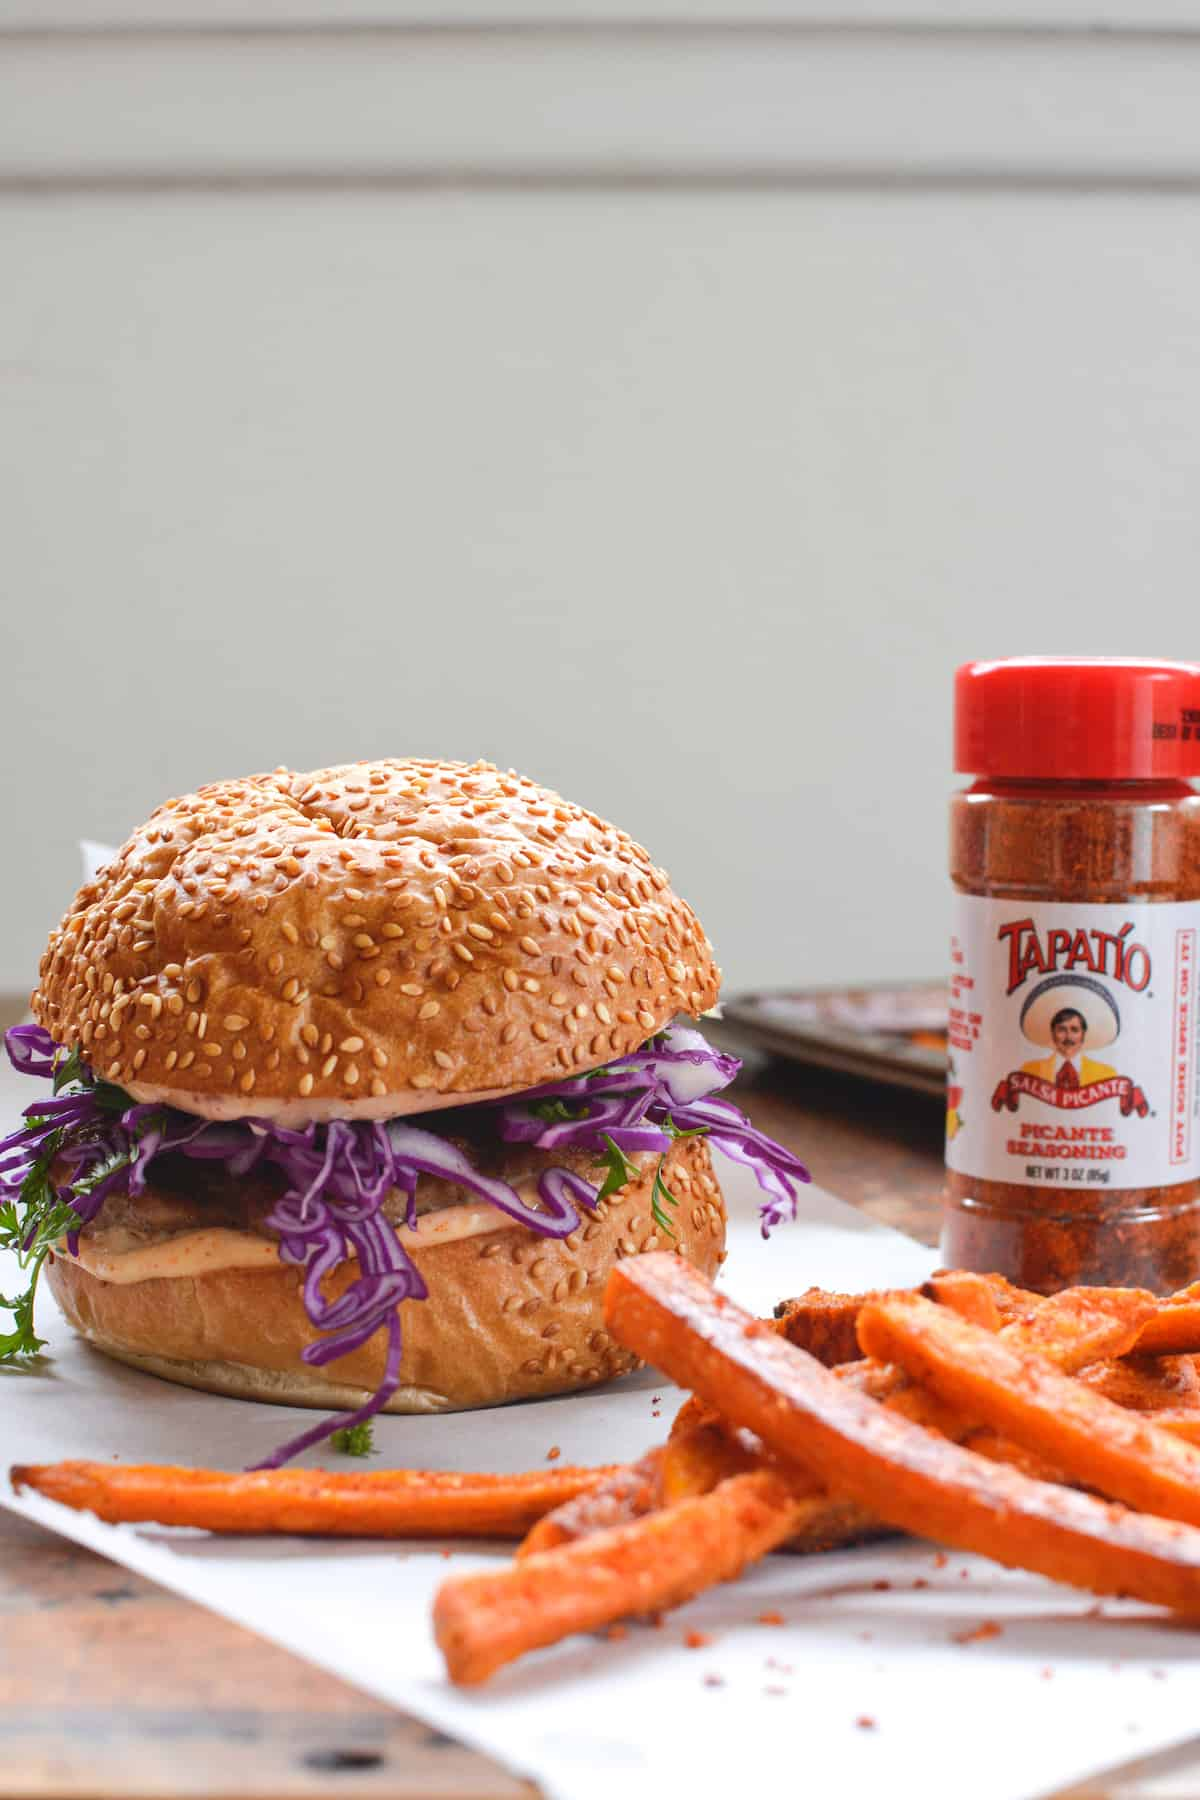 A turkey burger and sweet potato fries sitting on a piece of parchment paper on a wood table with a bottle of Tapatio spice mix next to it.